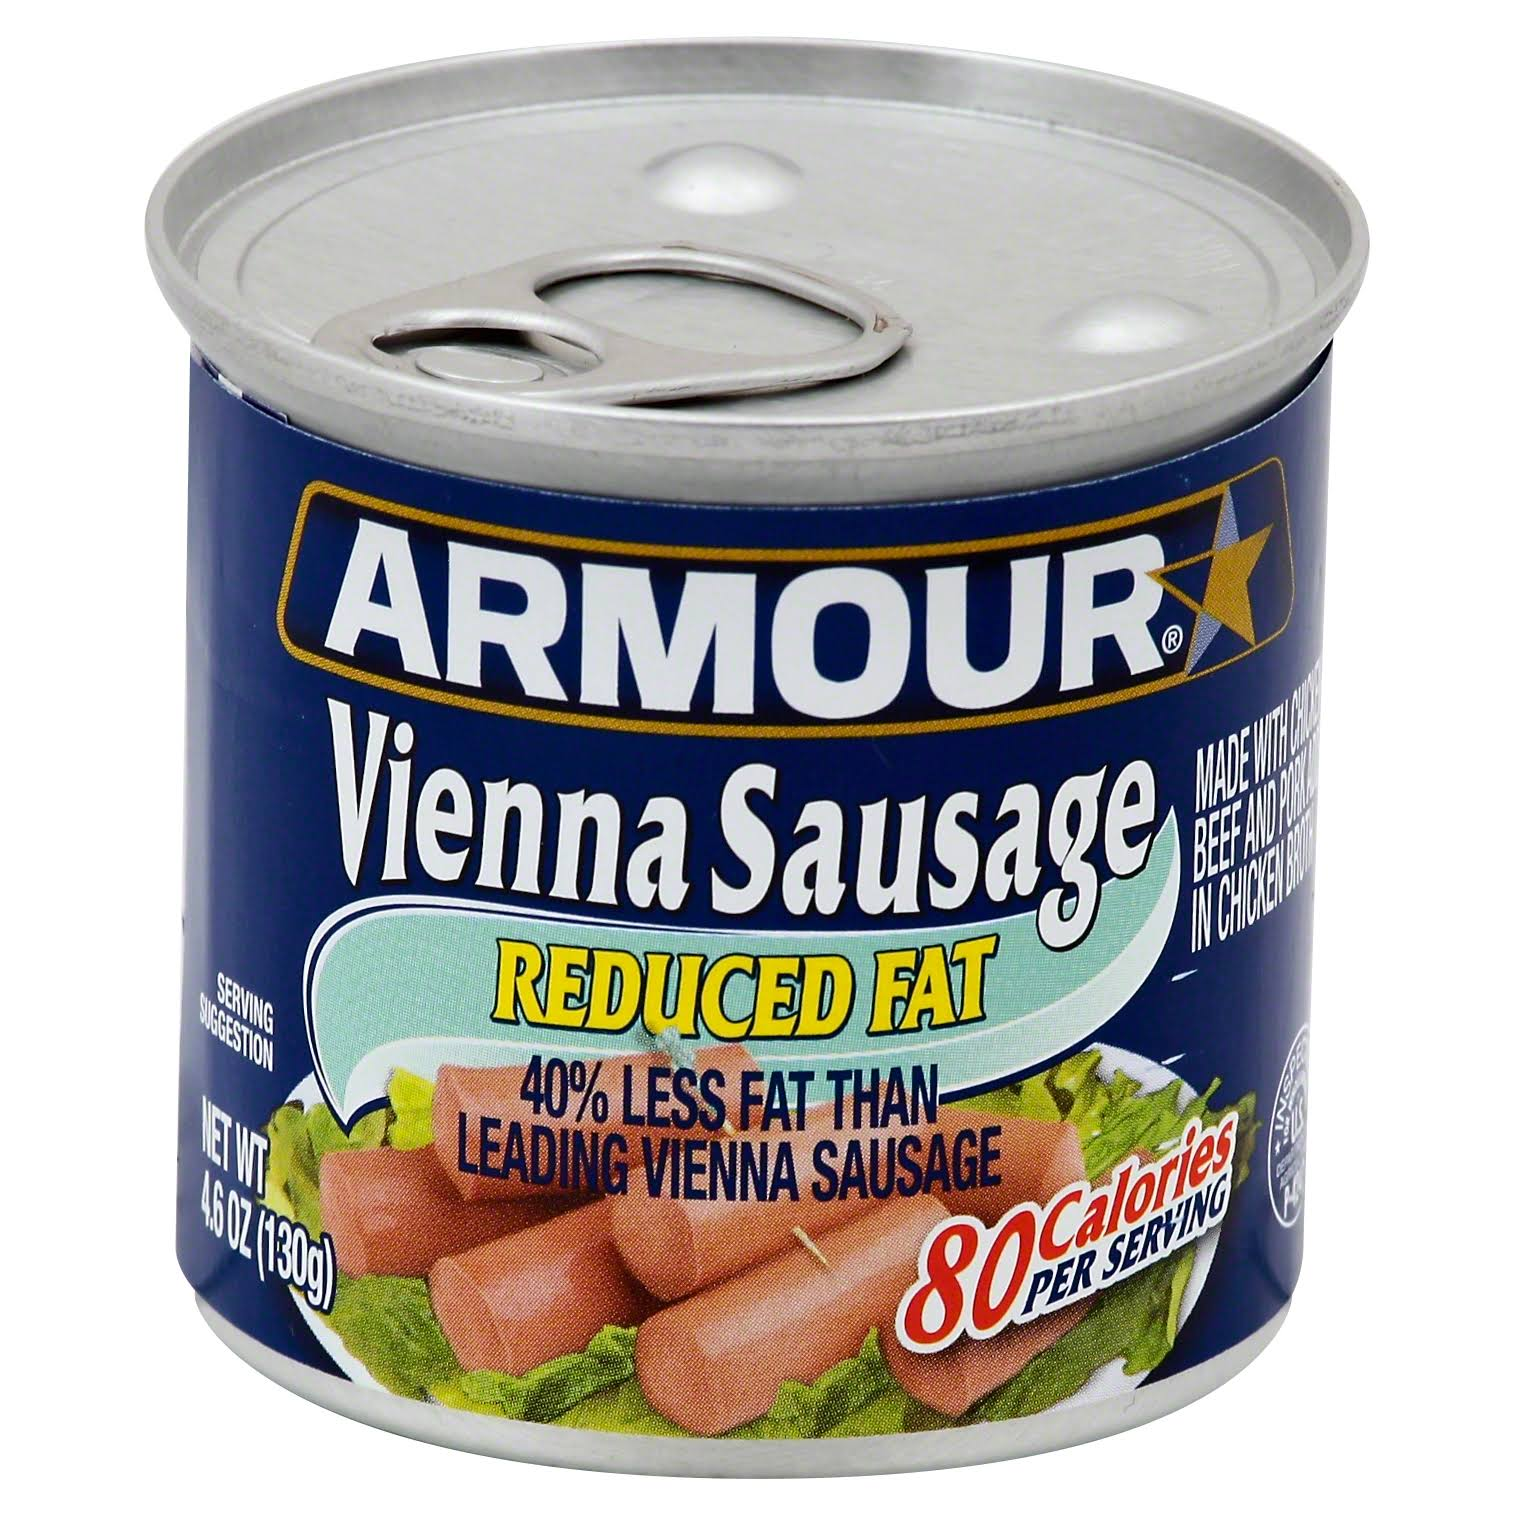 Armour Reduced Fat Vienna Sausage - 130g